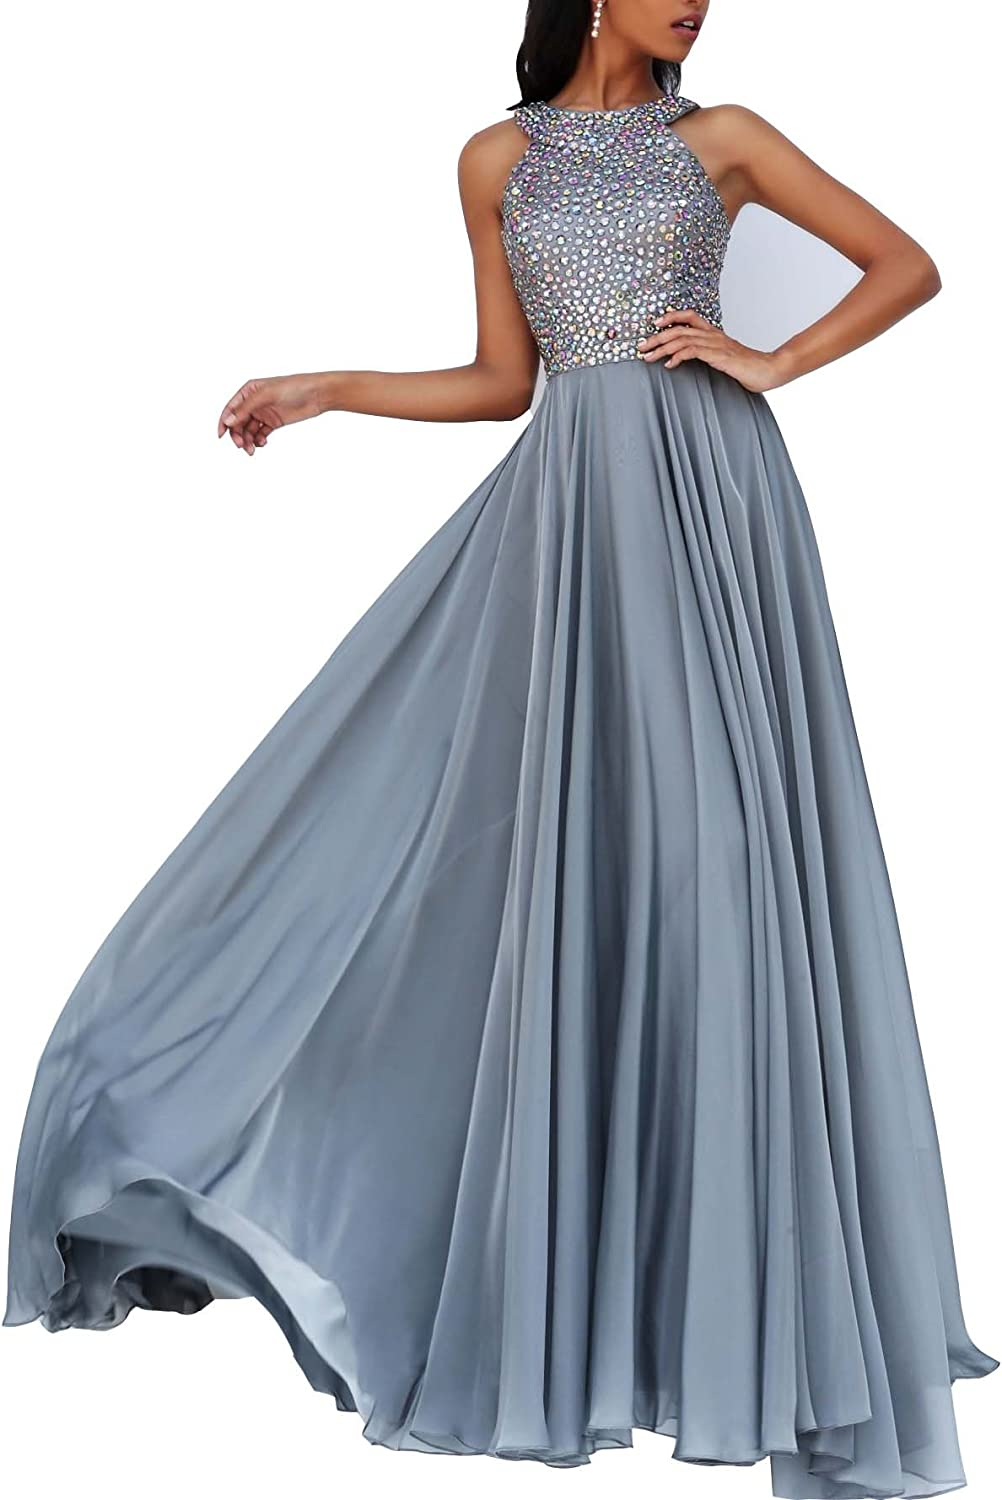 Changjie Women's Halter Beading Party Prom Dress Long Formal Evening Gown